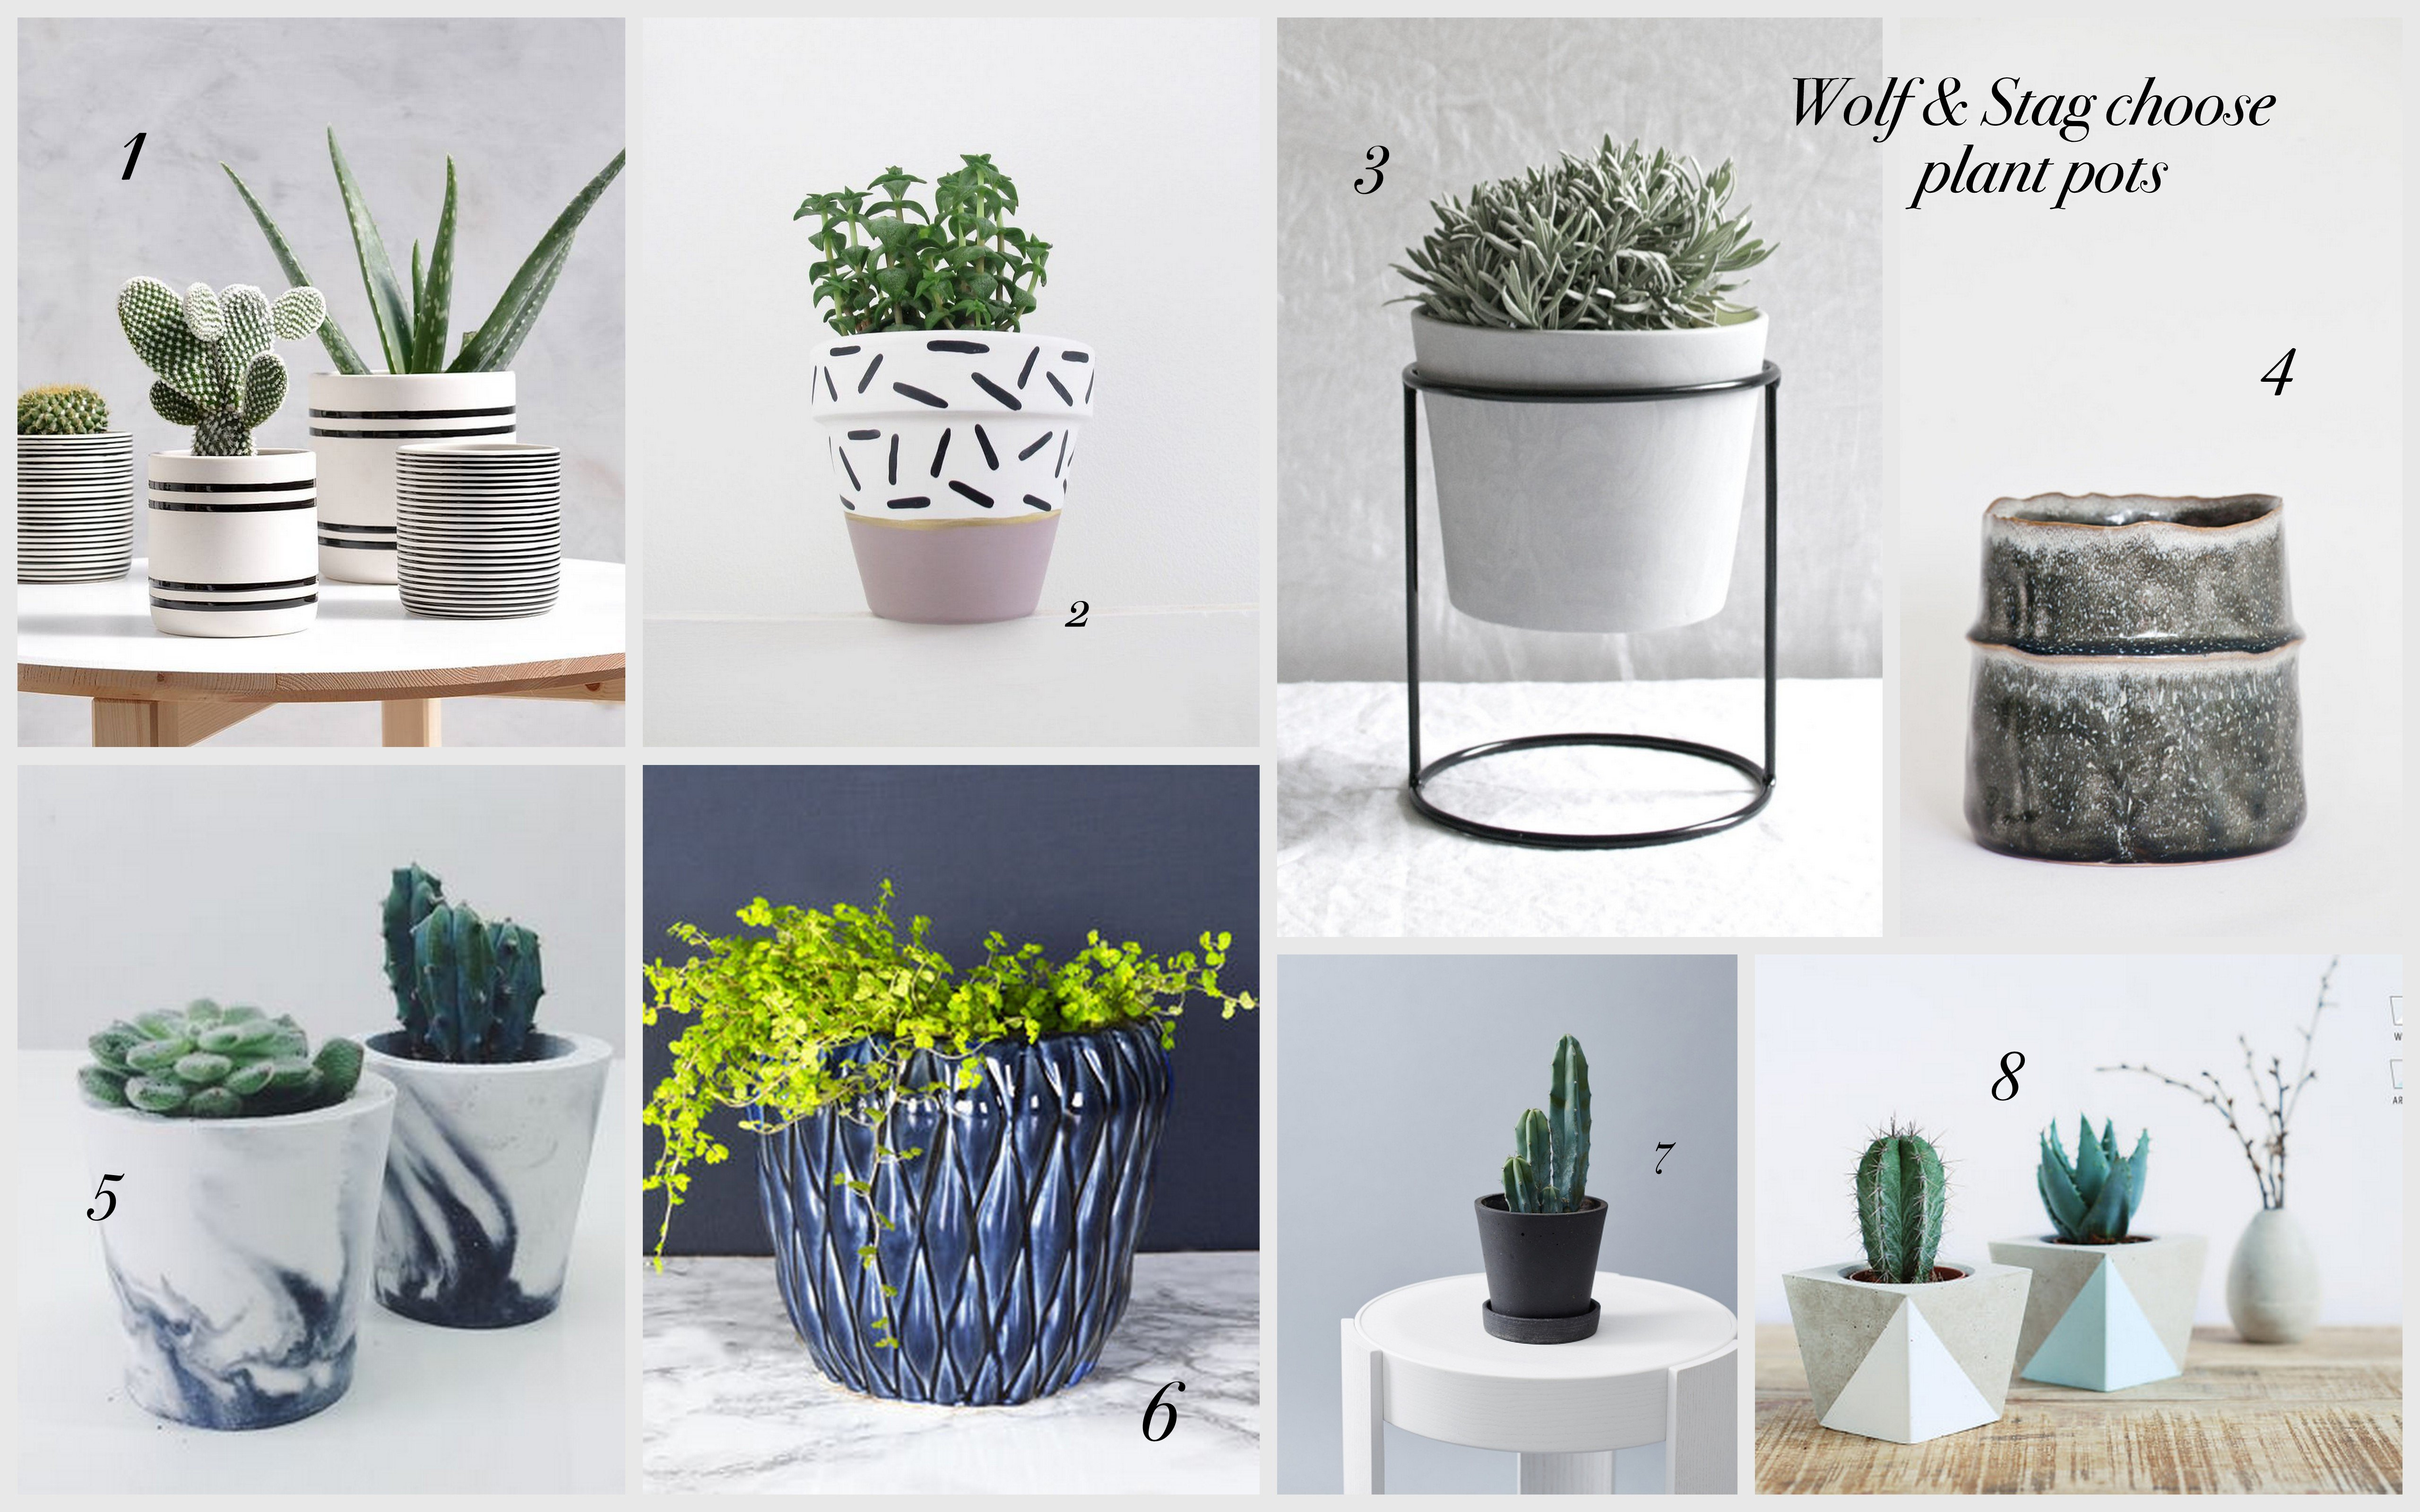 Wolf & Stag choose plant pots